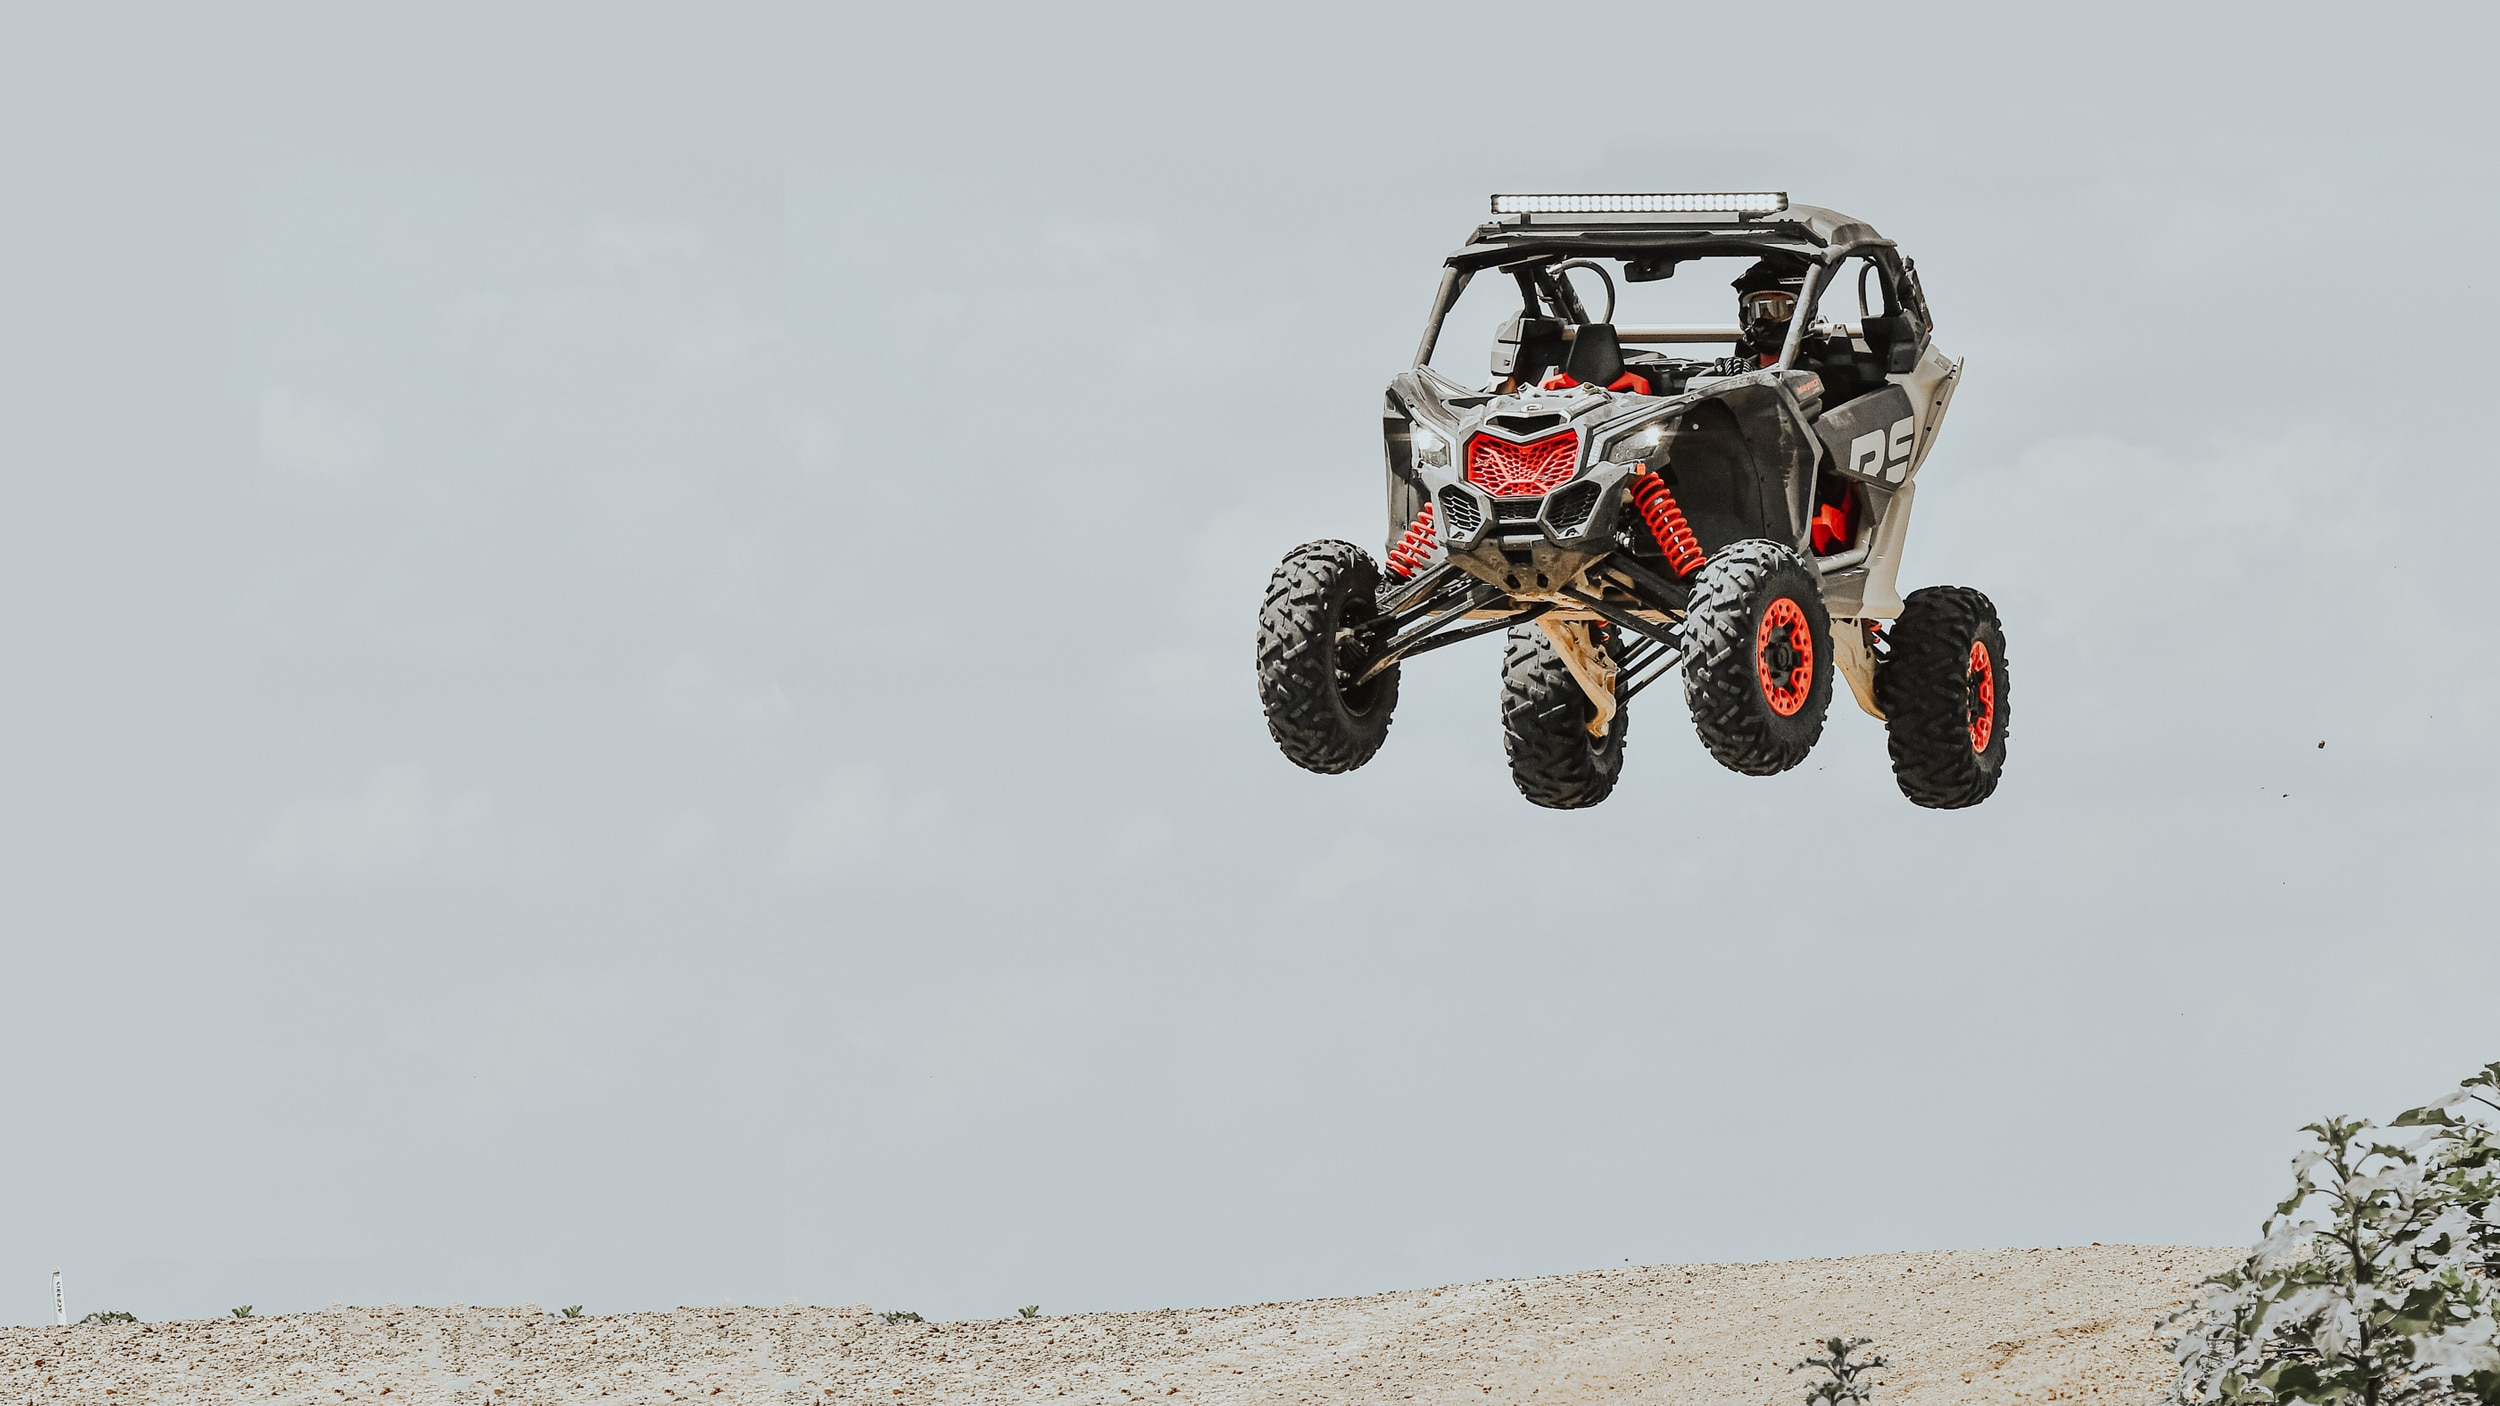 Maverick X3 X rc Turbo RR Mexico Streets